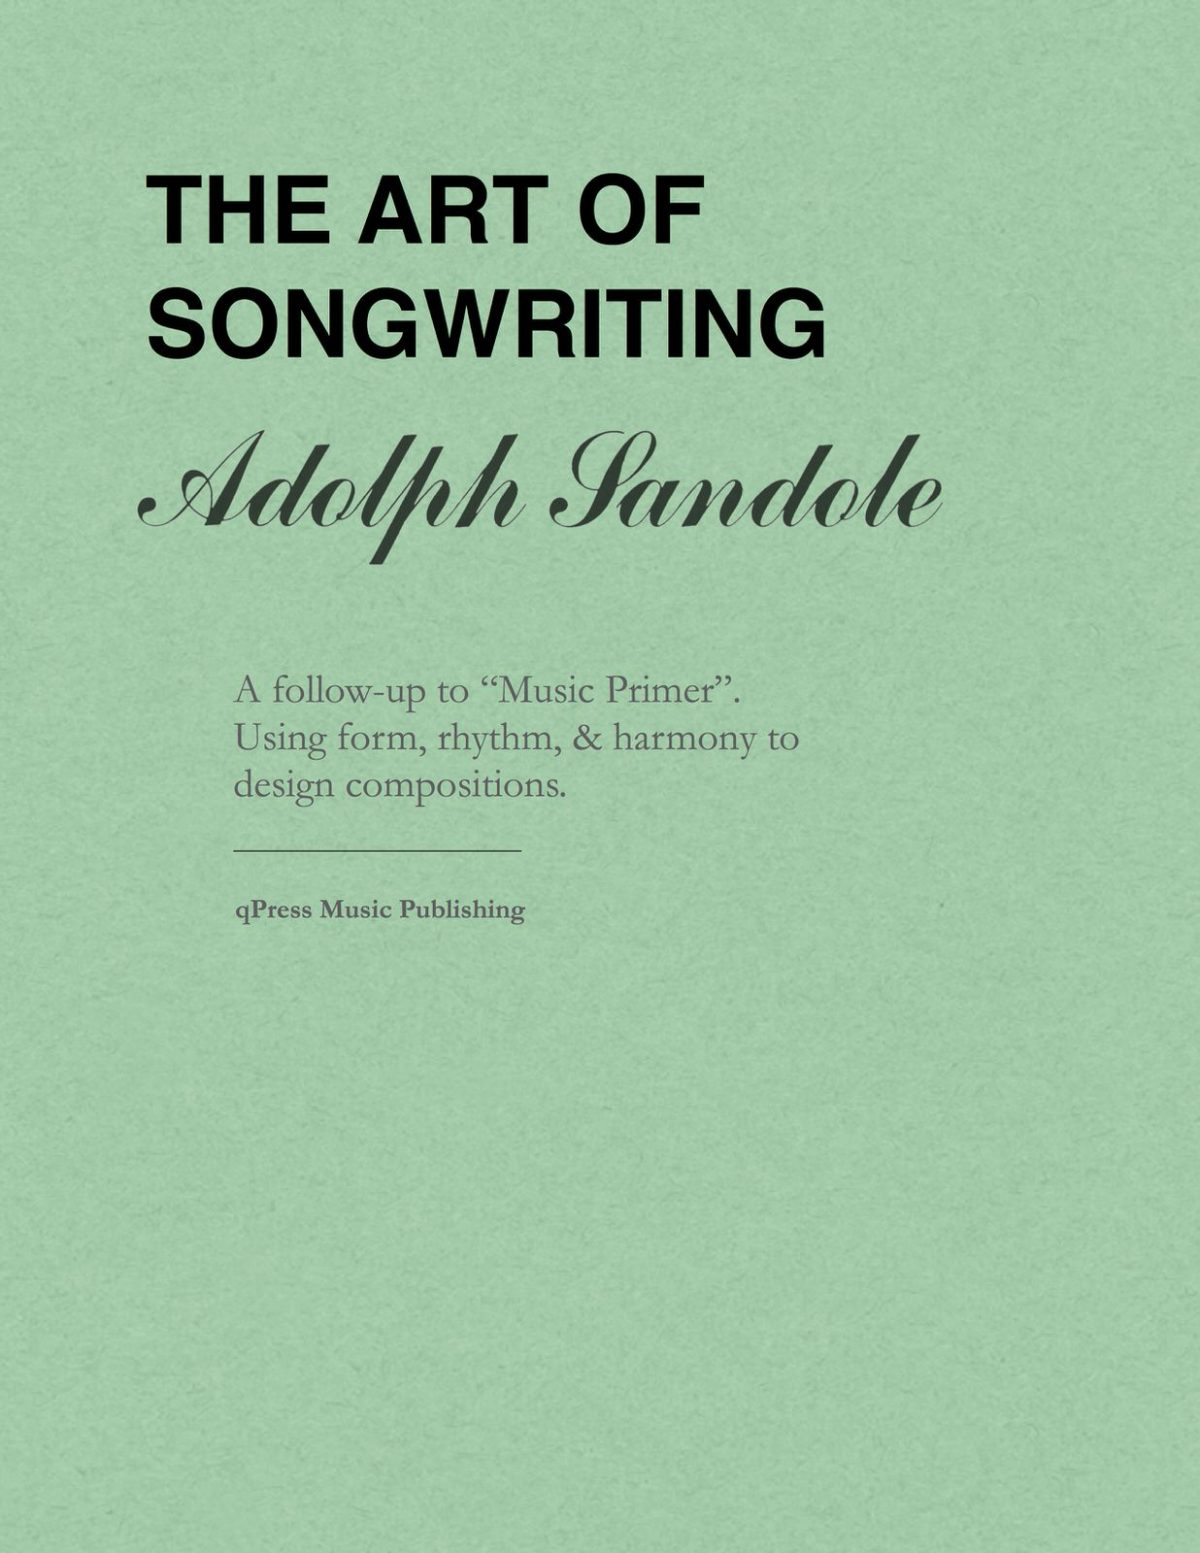 Sandole, The Art of Songwriting-p01